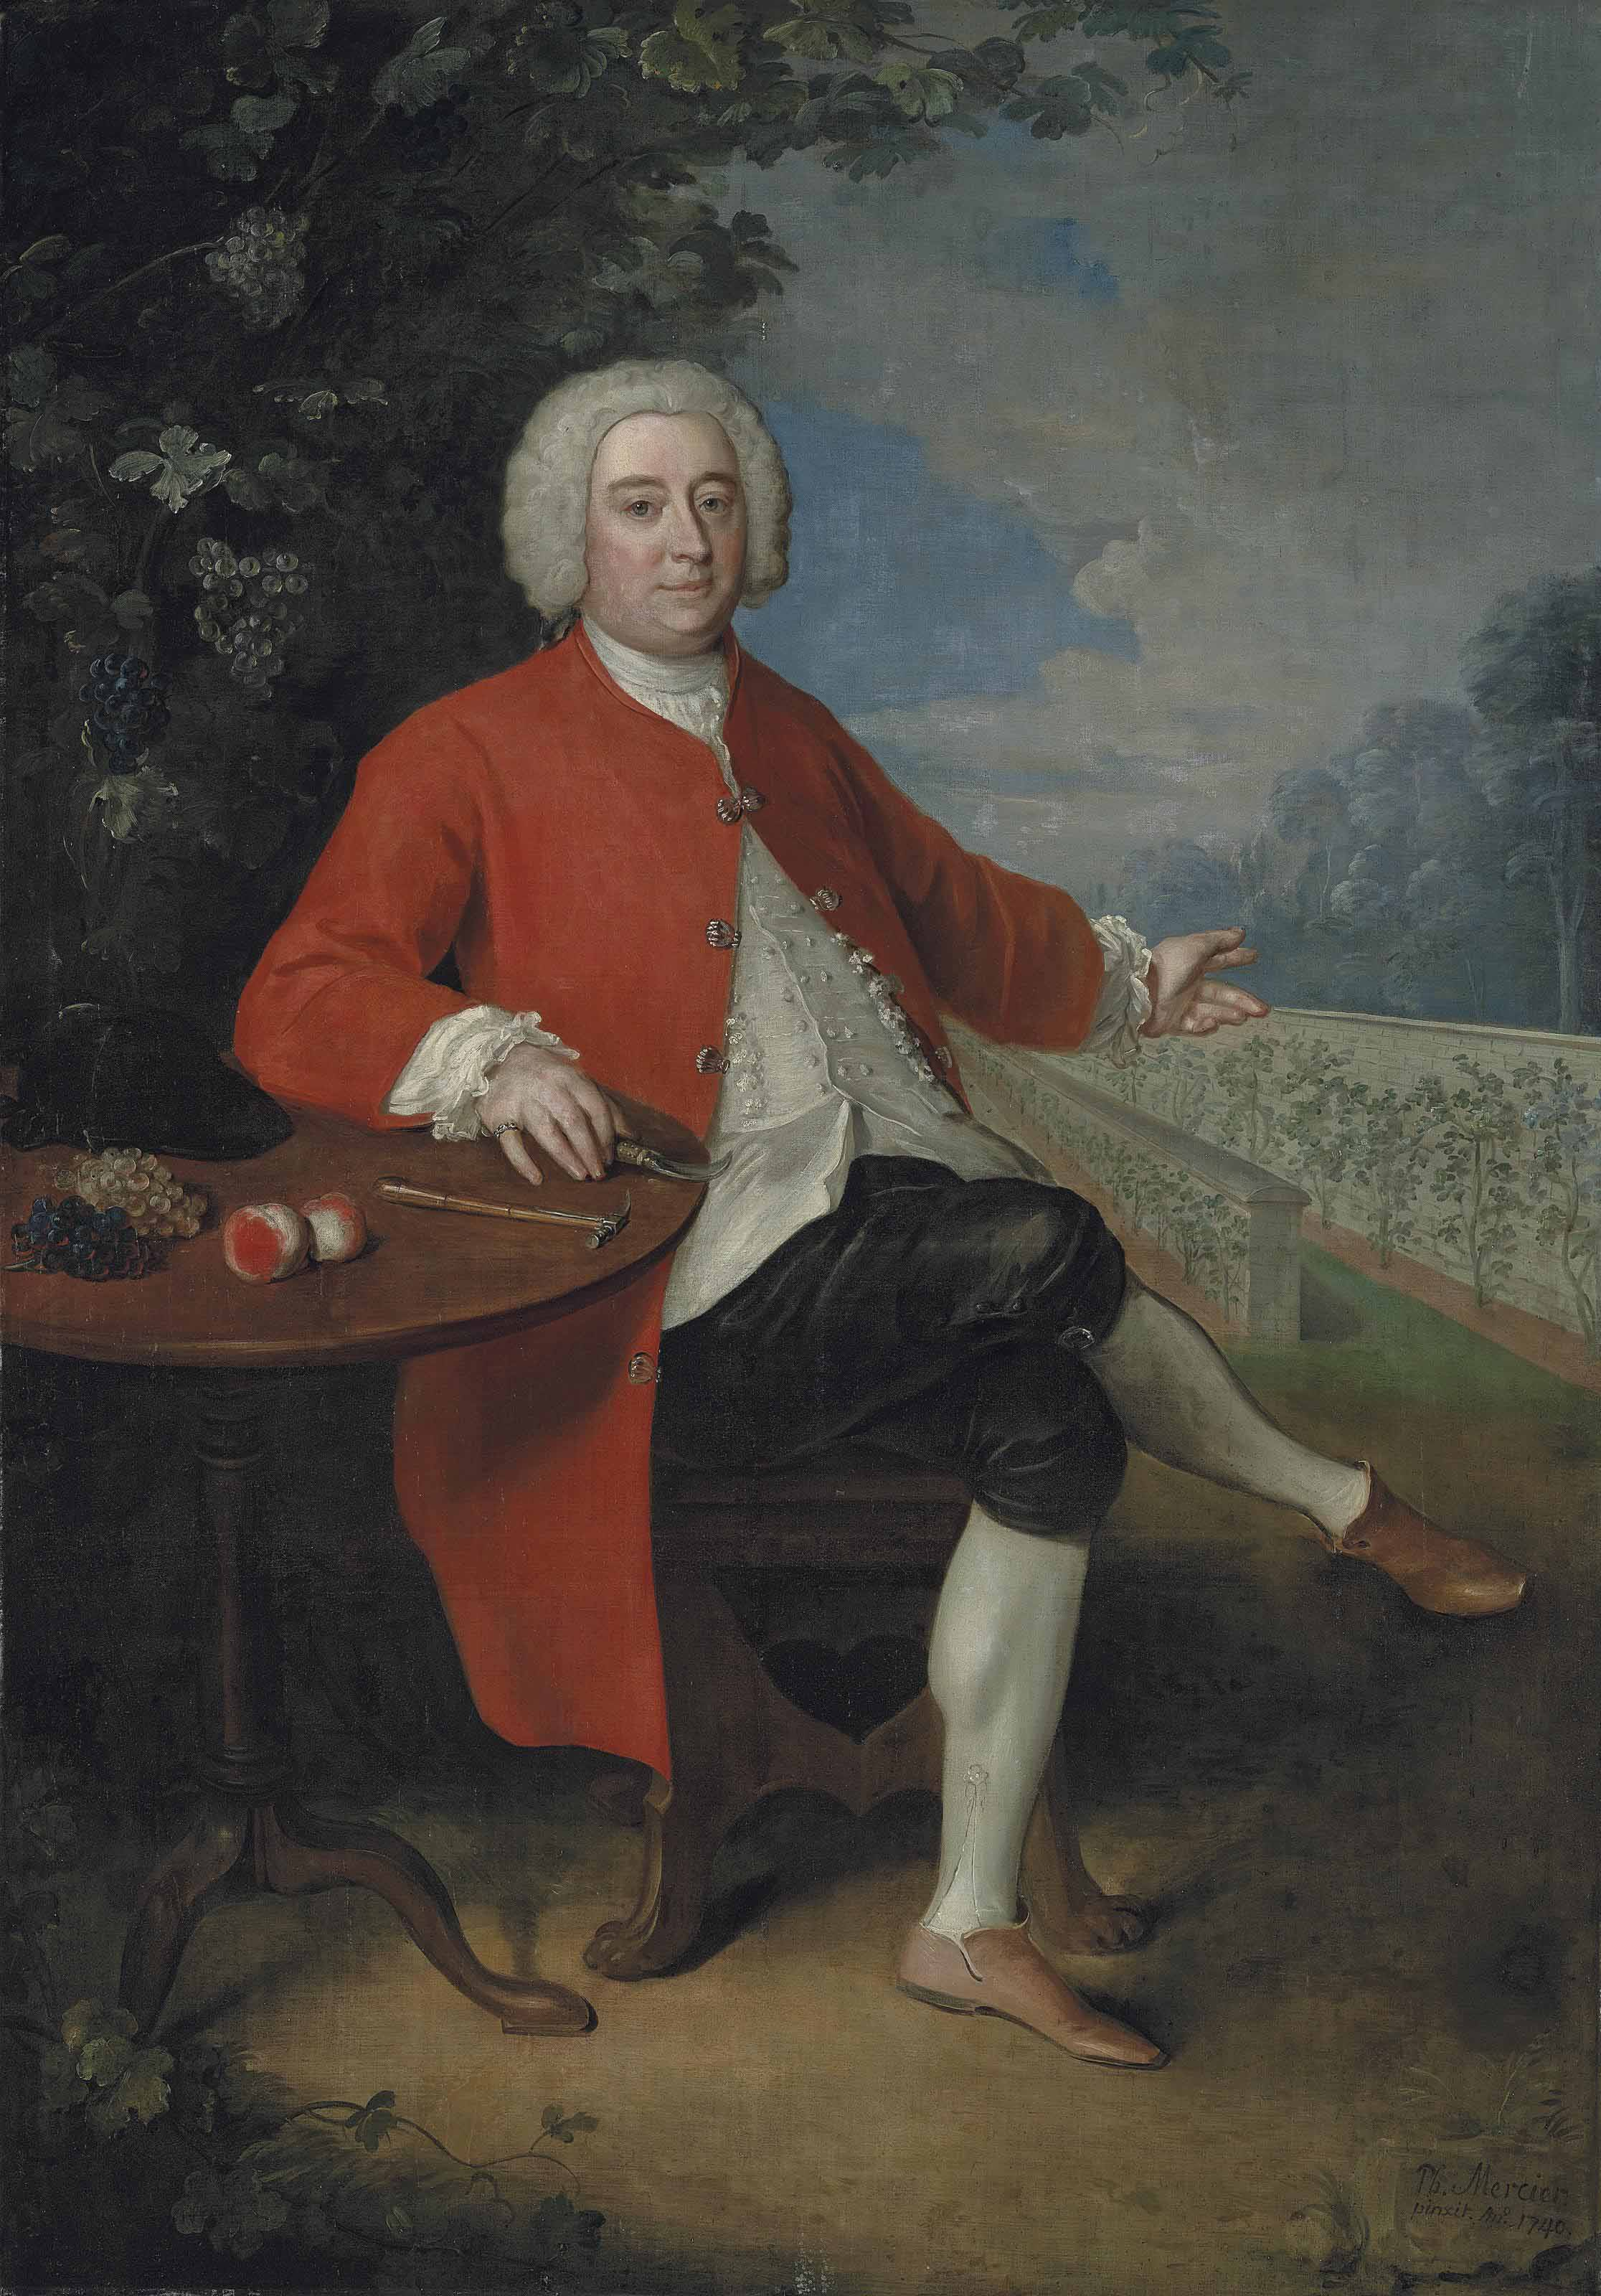 Portrait of Ralph Crathorne (d. 1755), of Ness Hall, North Riding, Yorkshire, full-length, seated at a table with grapes, peaches, a riding hat, a hammer and a pruning knife, in a landscape, gesturing to a vinery wall, in a landscape